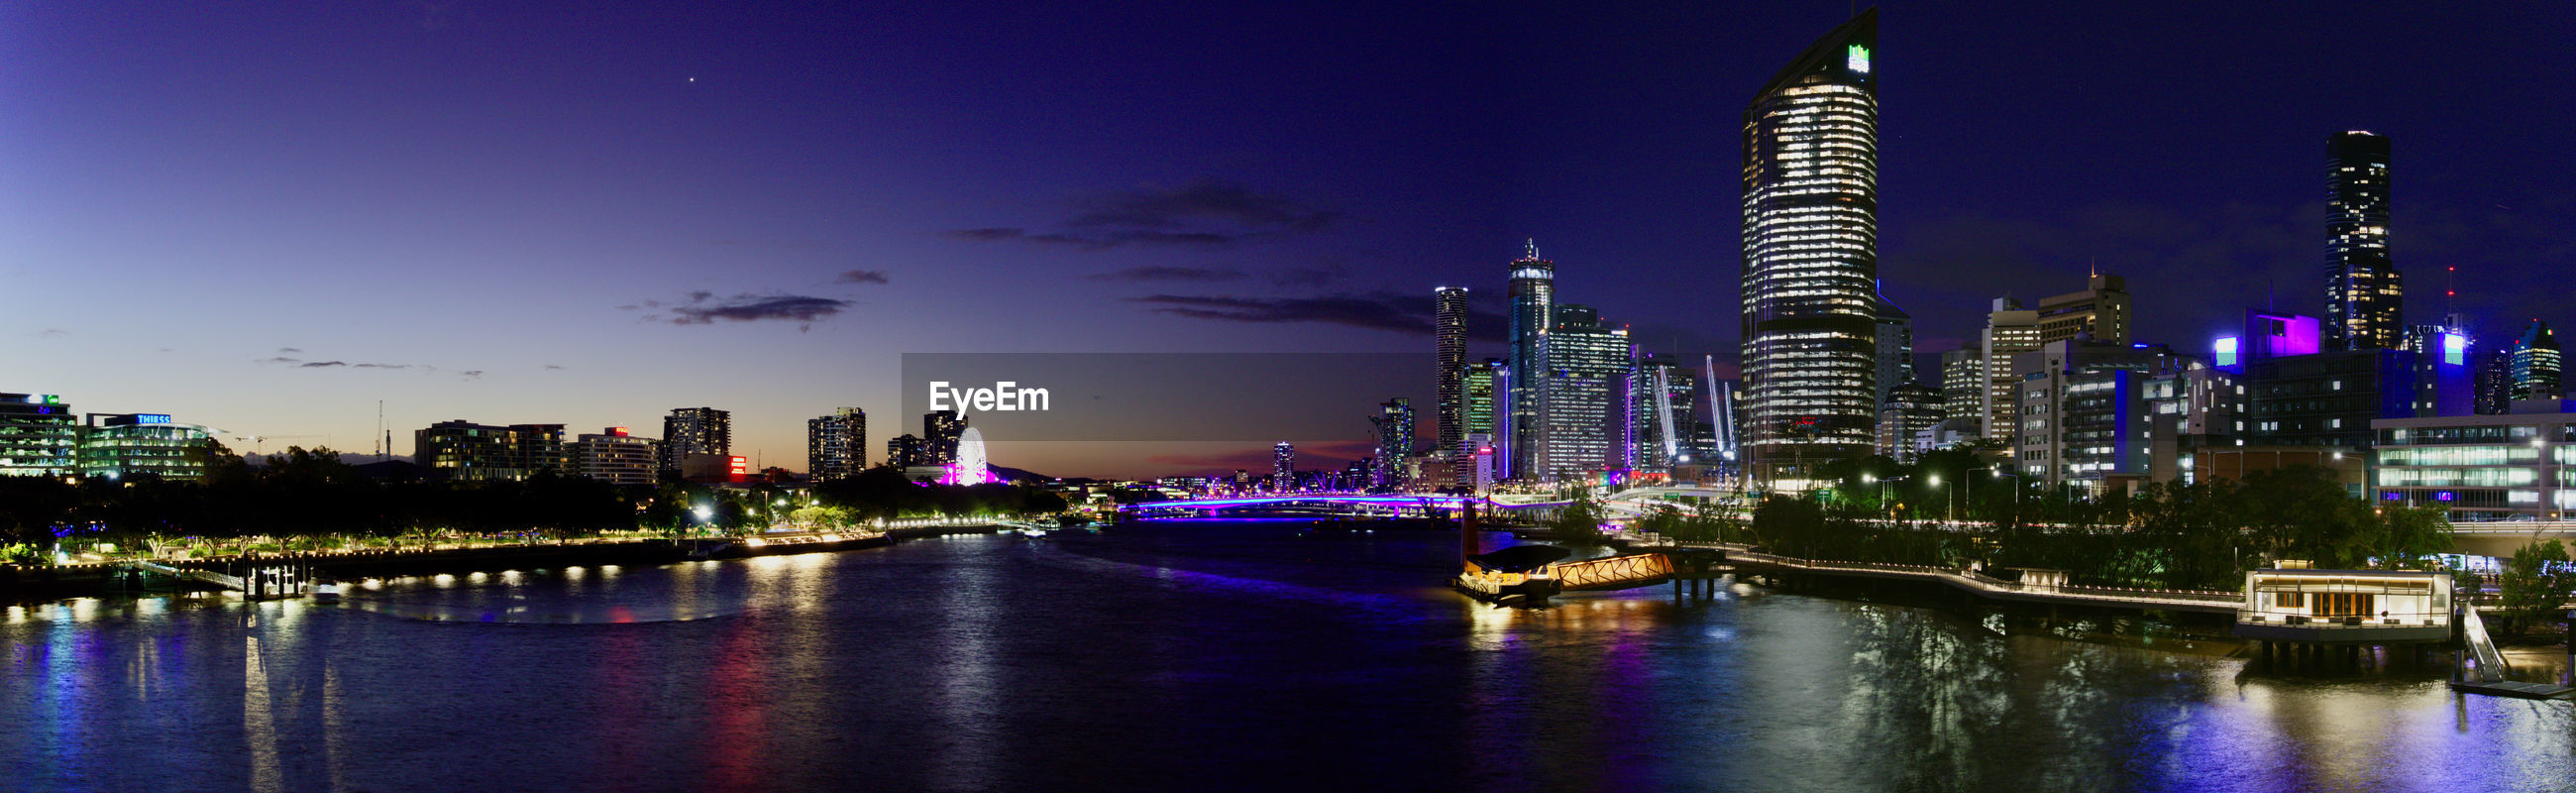 PANORAMIC VIEW OF ILLUMINATED CITY BUILDINGS AT NIGHT